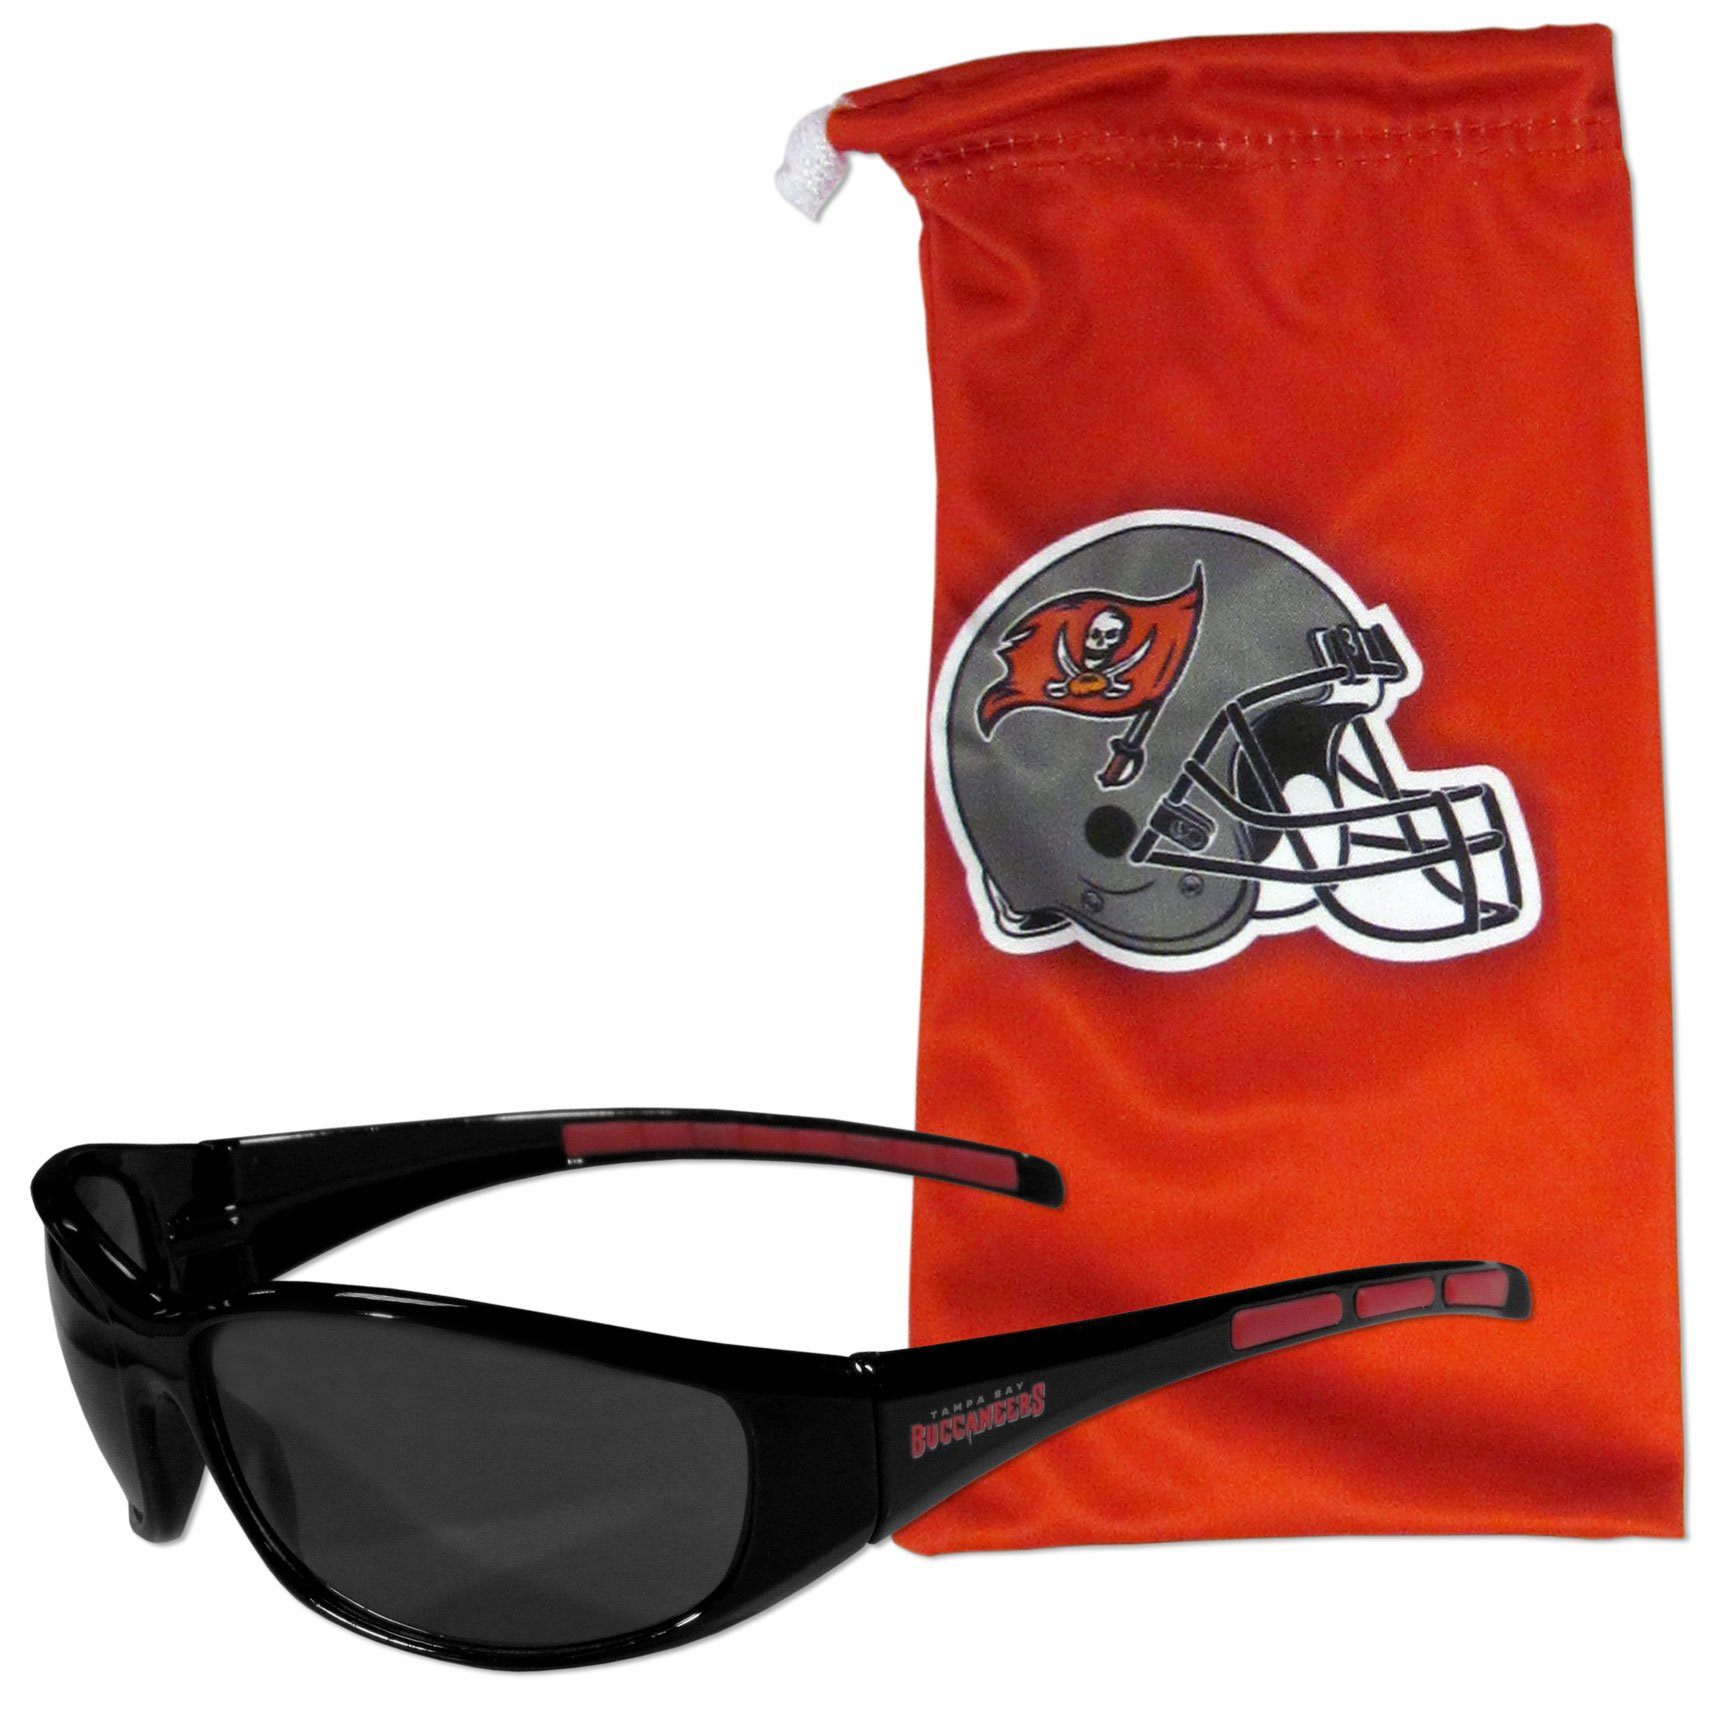 NFL Tampa Bay Buccaneers Adult Sunglass and Bag Set, Red